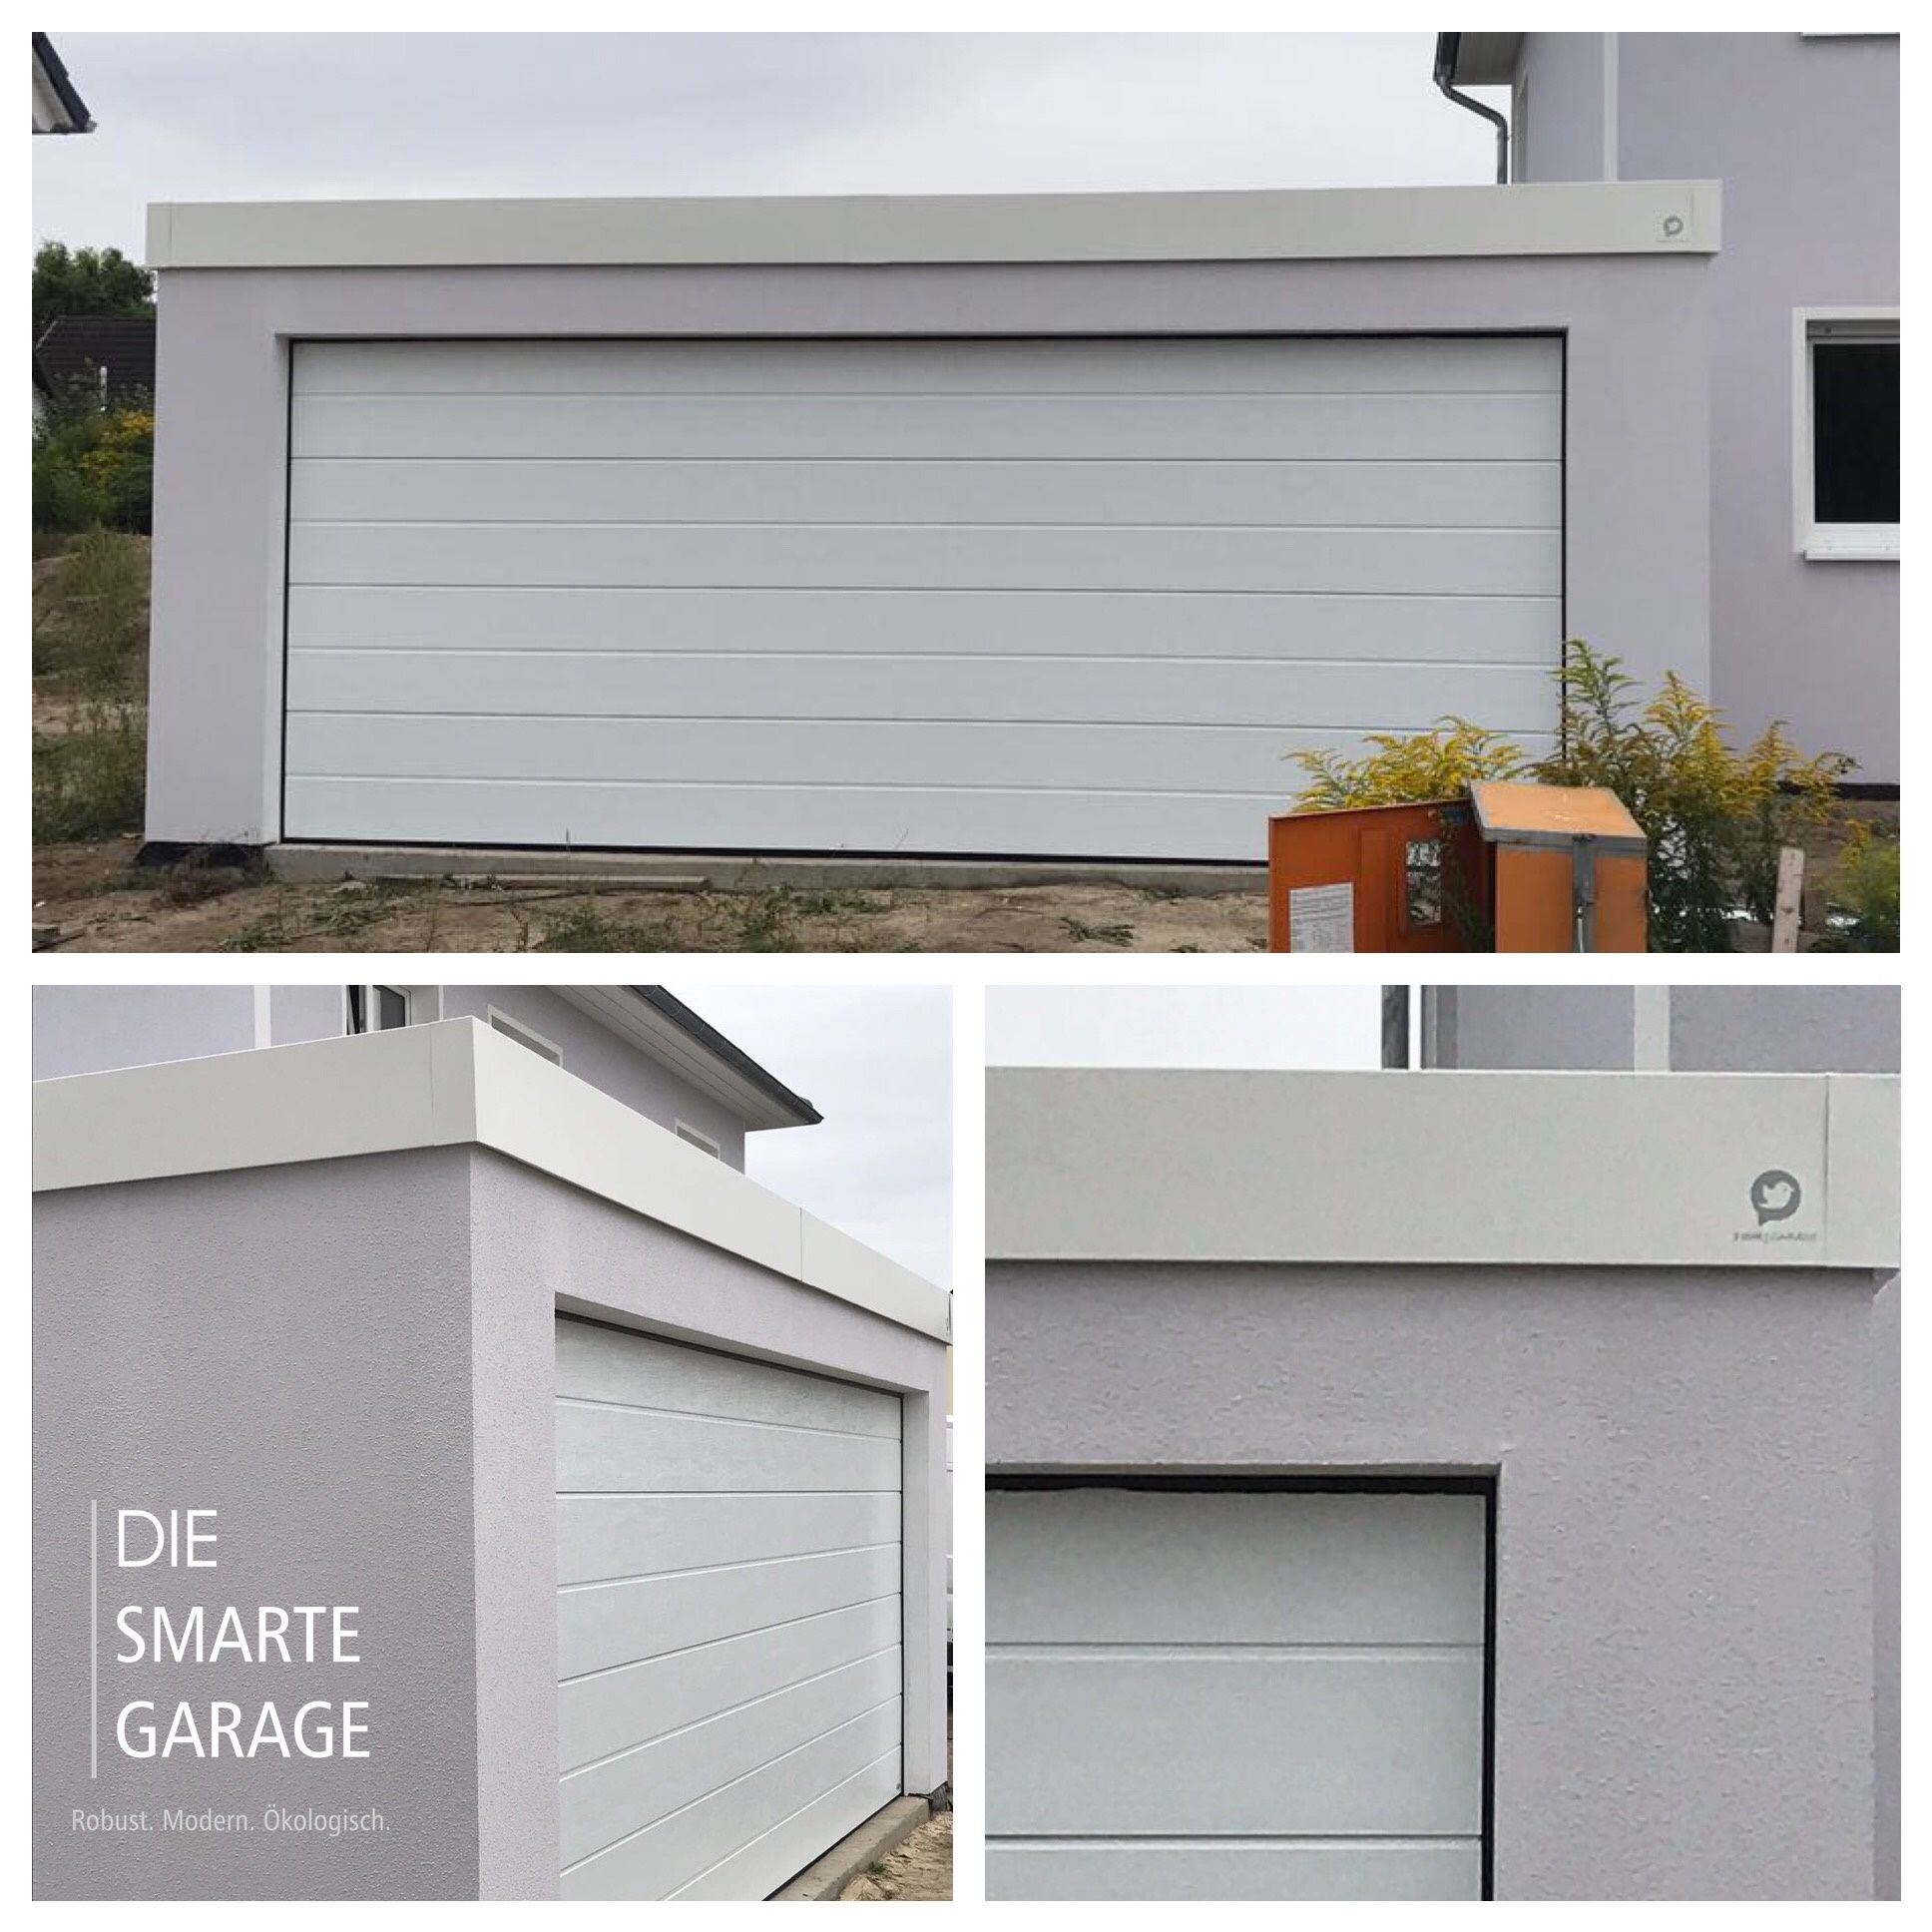 garage in holzst nderbauweise garage fertiggarage finkgarage garagausholz wirliebengarage. Black Bedroom Furniture Sets. Home Design Ideas